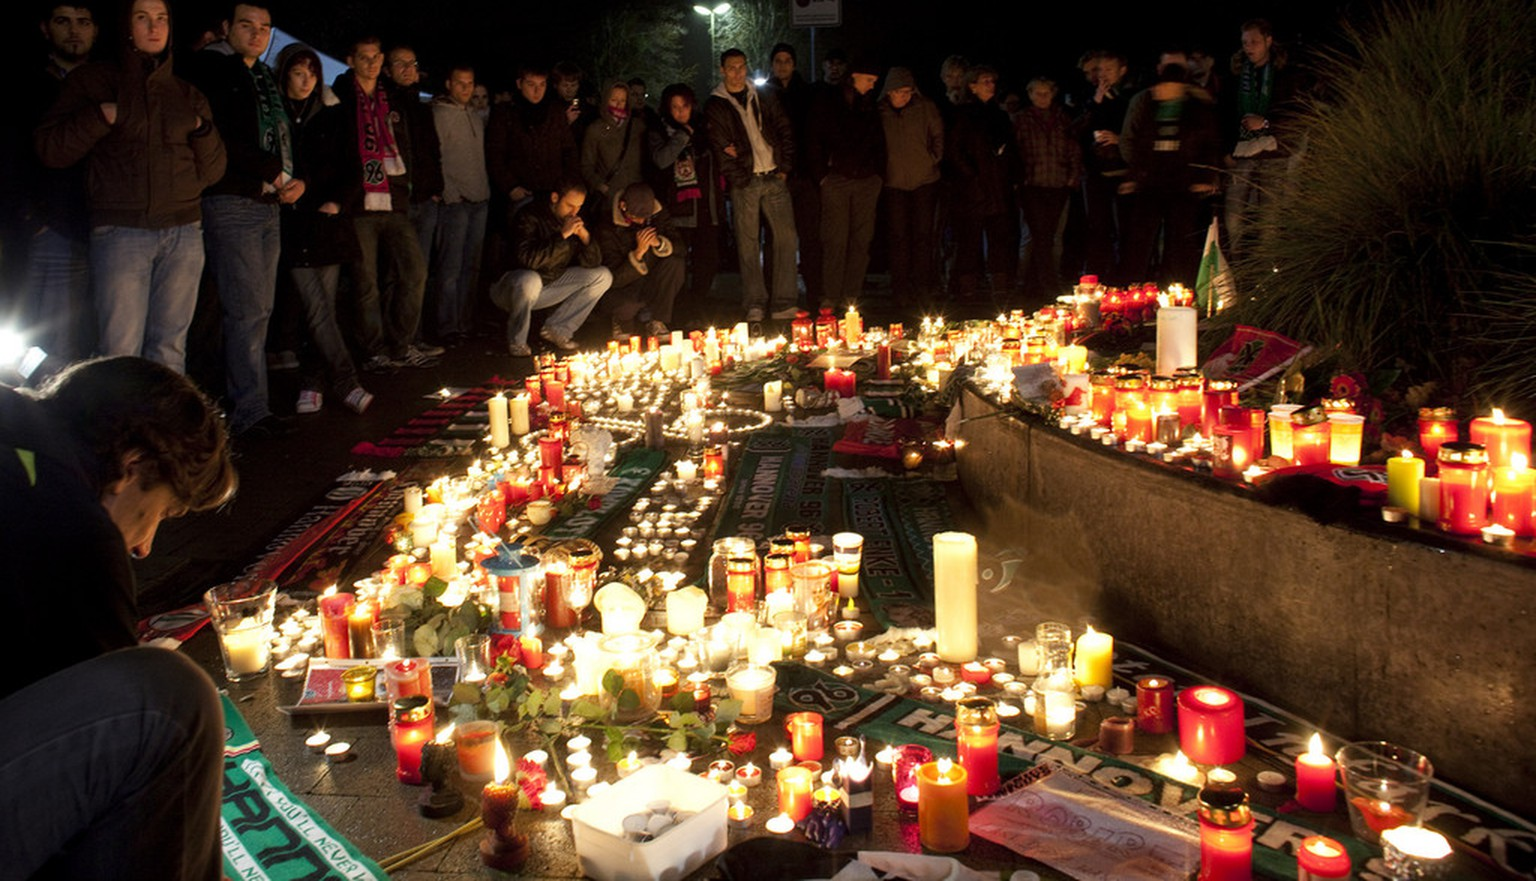 Hundreds of supporters mourn in front of a soccer stadium in Hanover, northern Germany, early Wednesday, Nov. 11, 2009. Robert Enke, the Hanover 96 and Germany's national team goalkeeper, killed himself by apparently intentionally getting hit by a train on Tuesday. He was 32. (AP Photo/Joerg Sarbach)